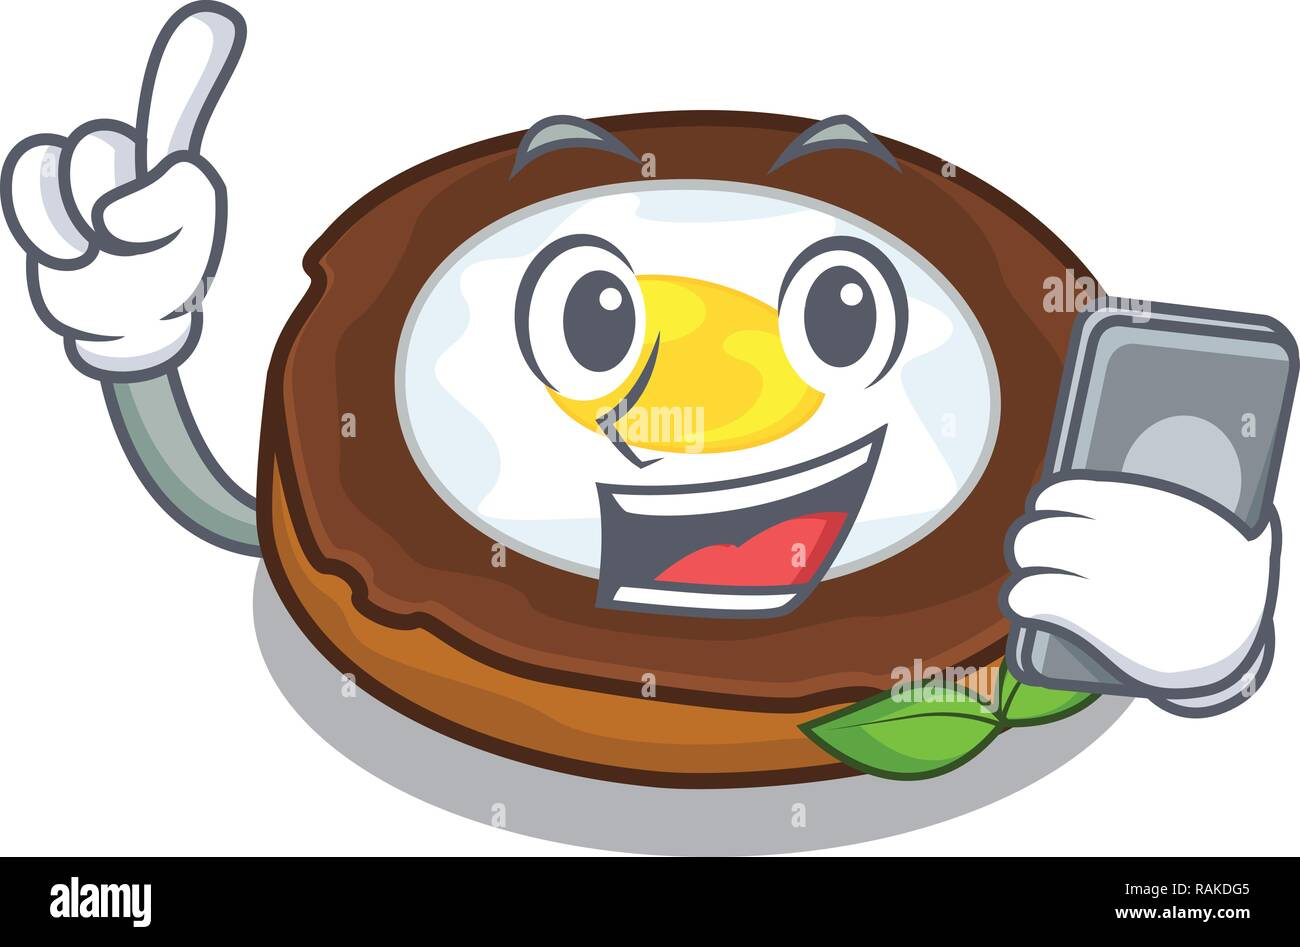 With phone egg scotch cartoons are ready served - Stock Vector